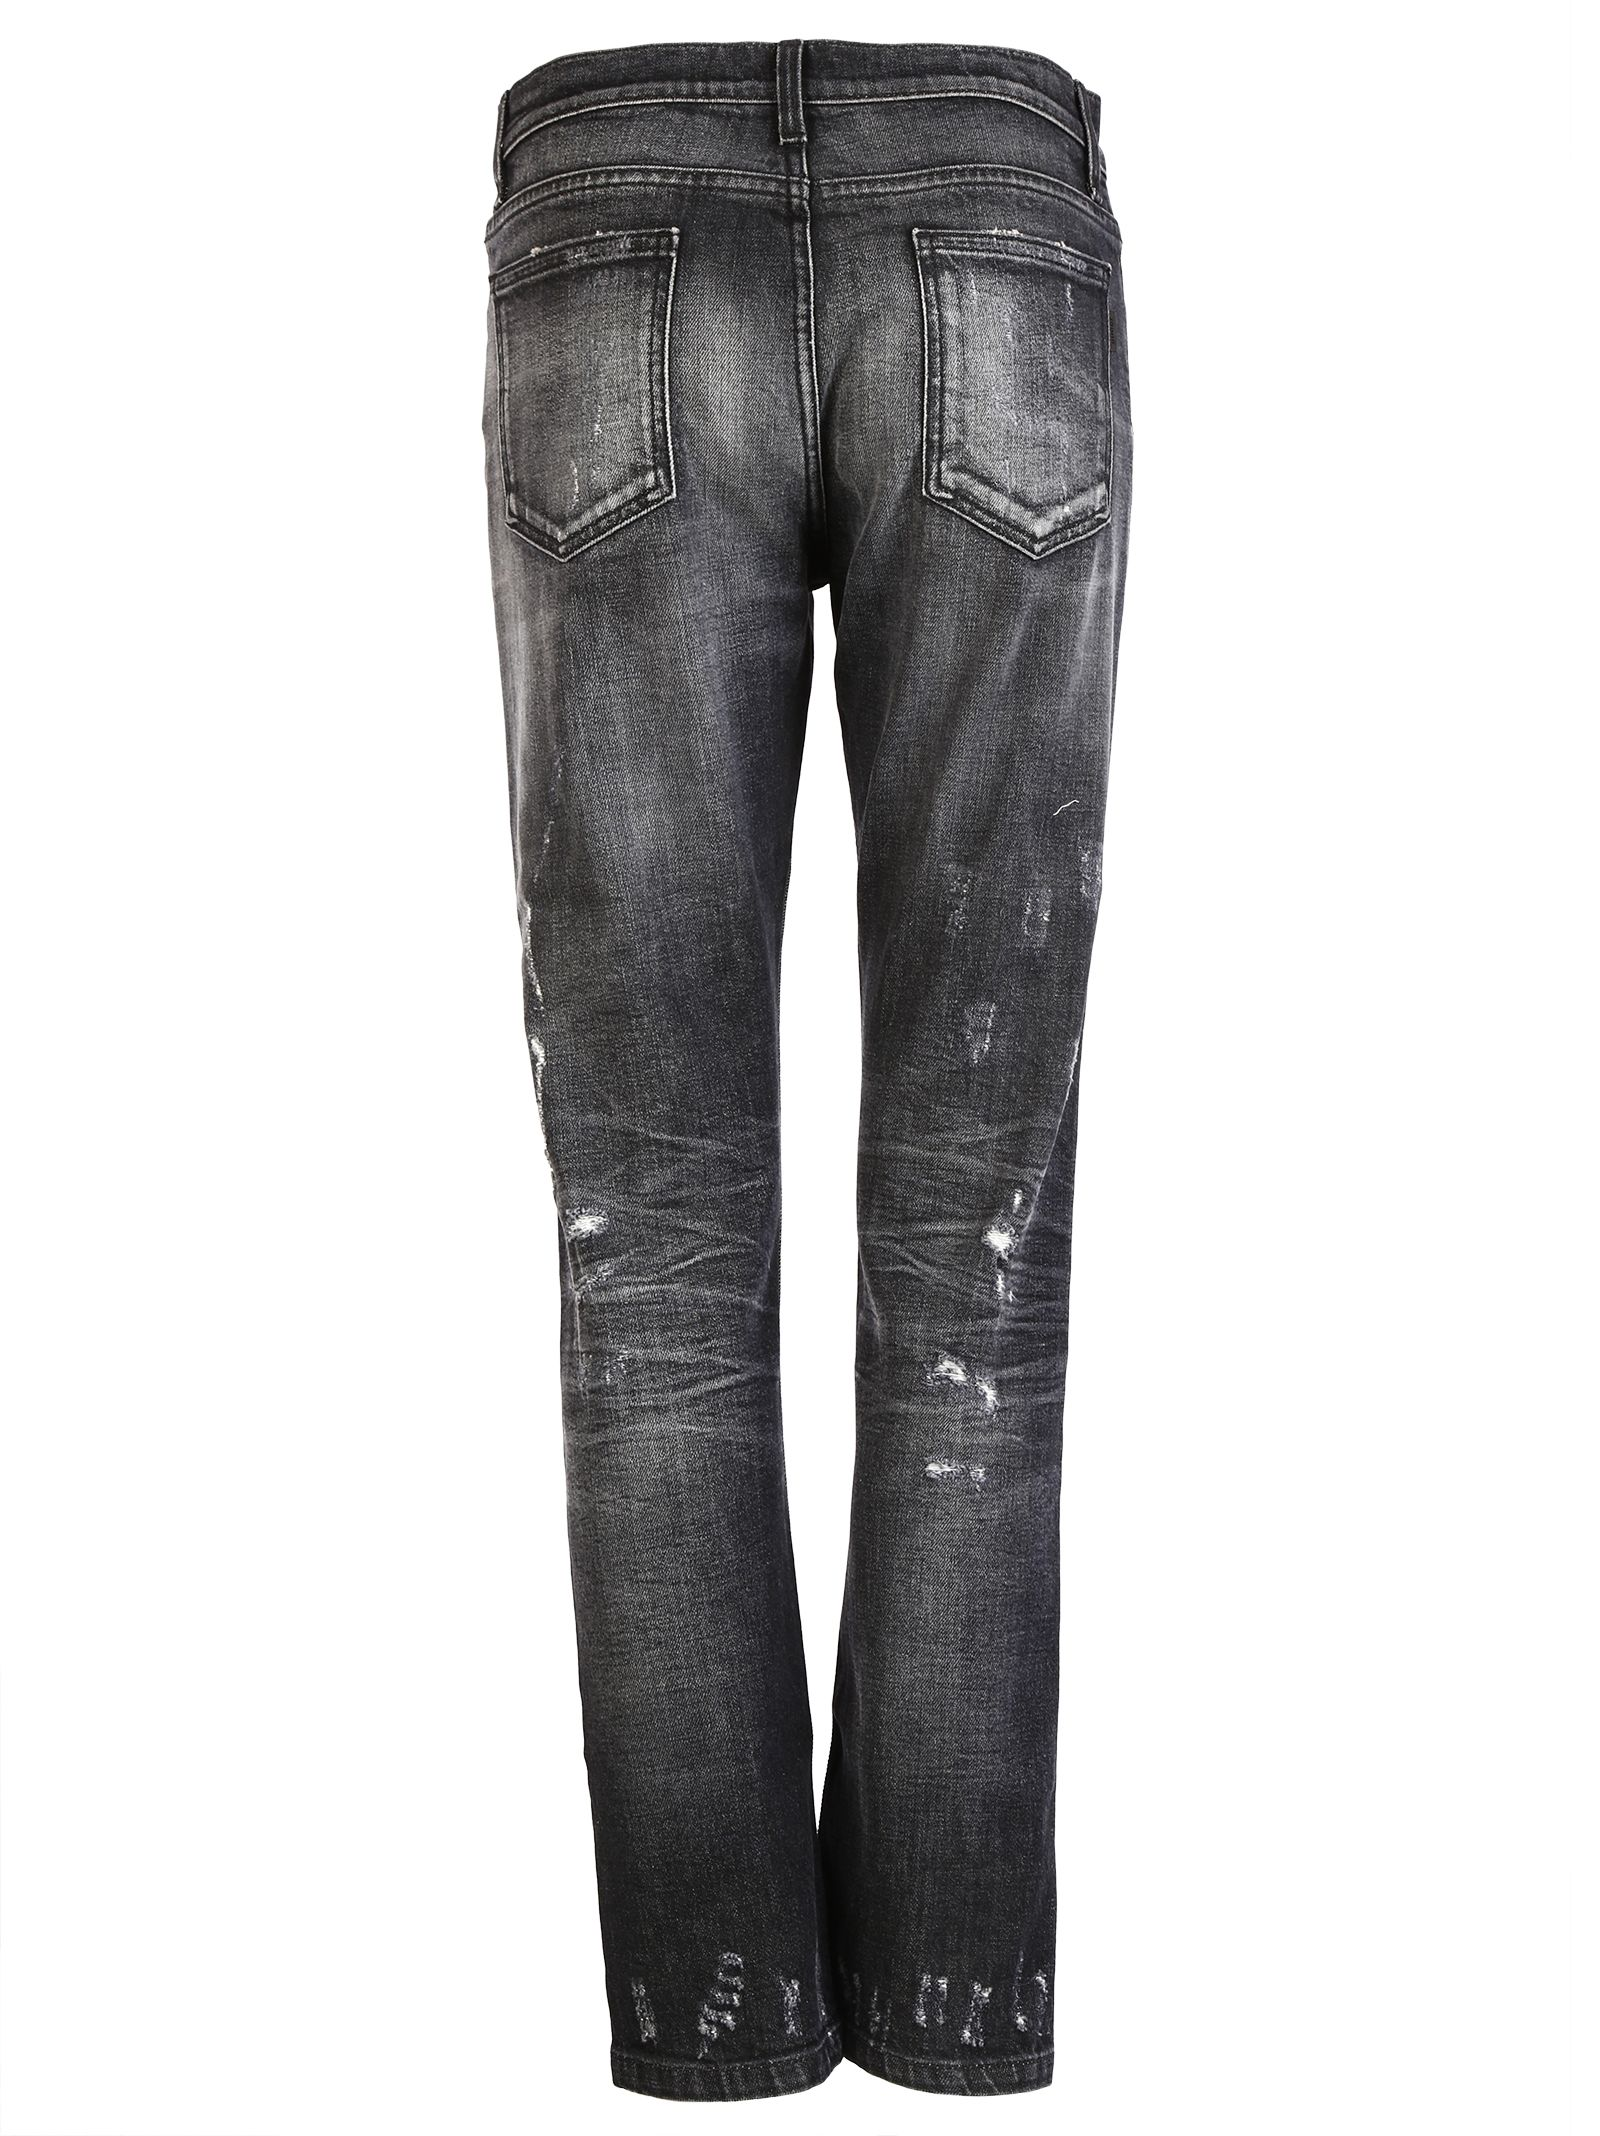 gucci gucci stone washed stretch ripped jeans black women 39 s jeans italist. Black Bedroom Furniture Sets. Home Design Ideas